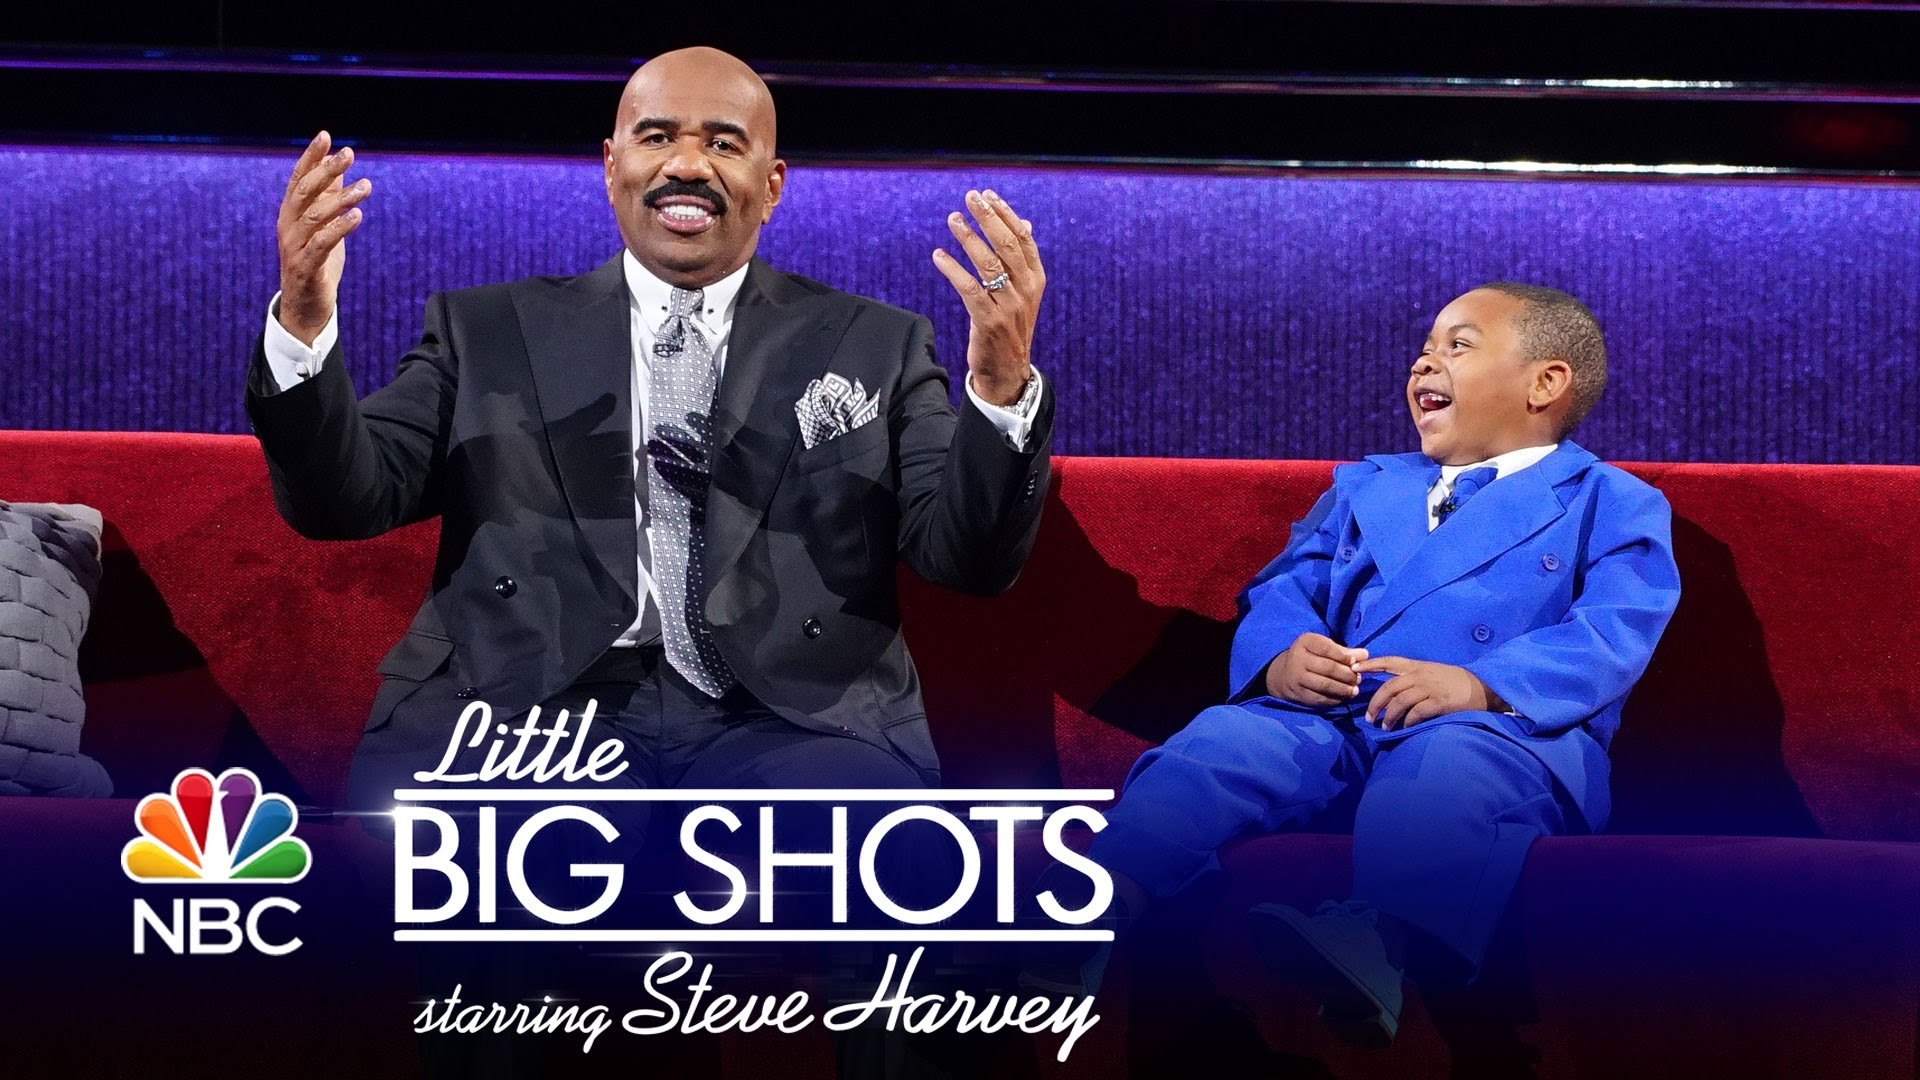 Little Big Shots – The Best Interview of Steve's Life